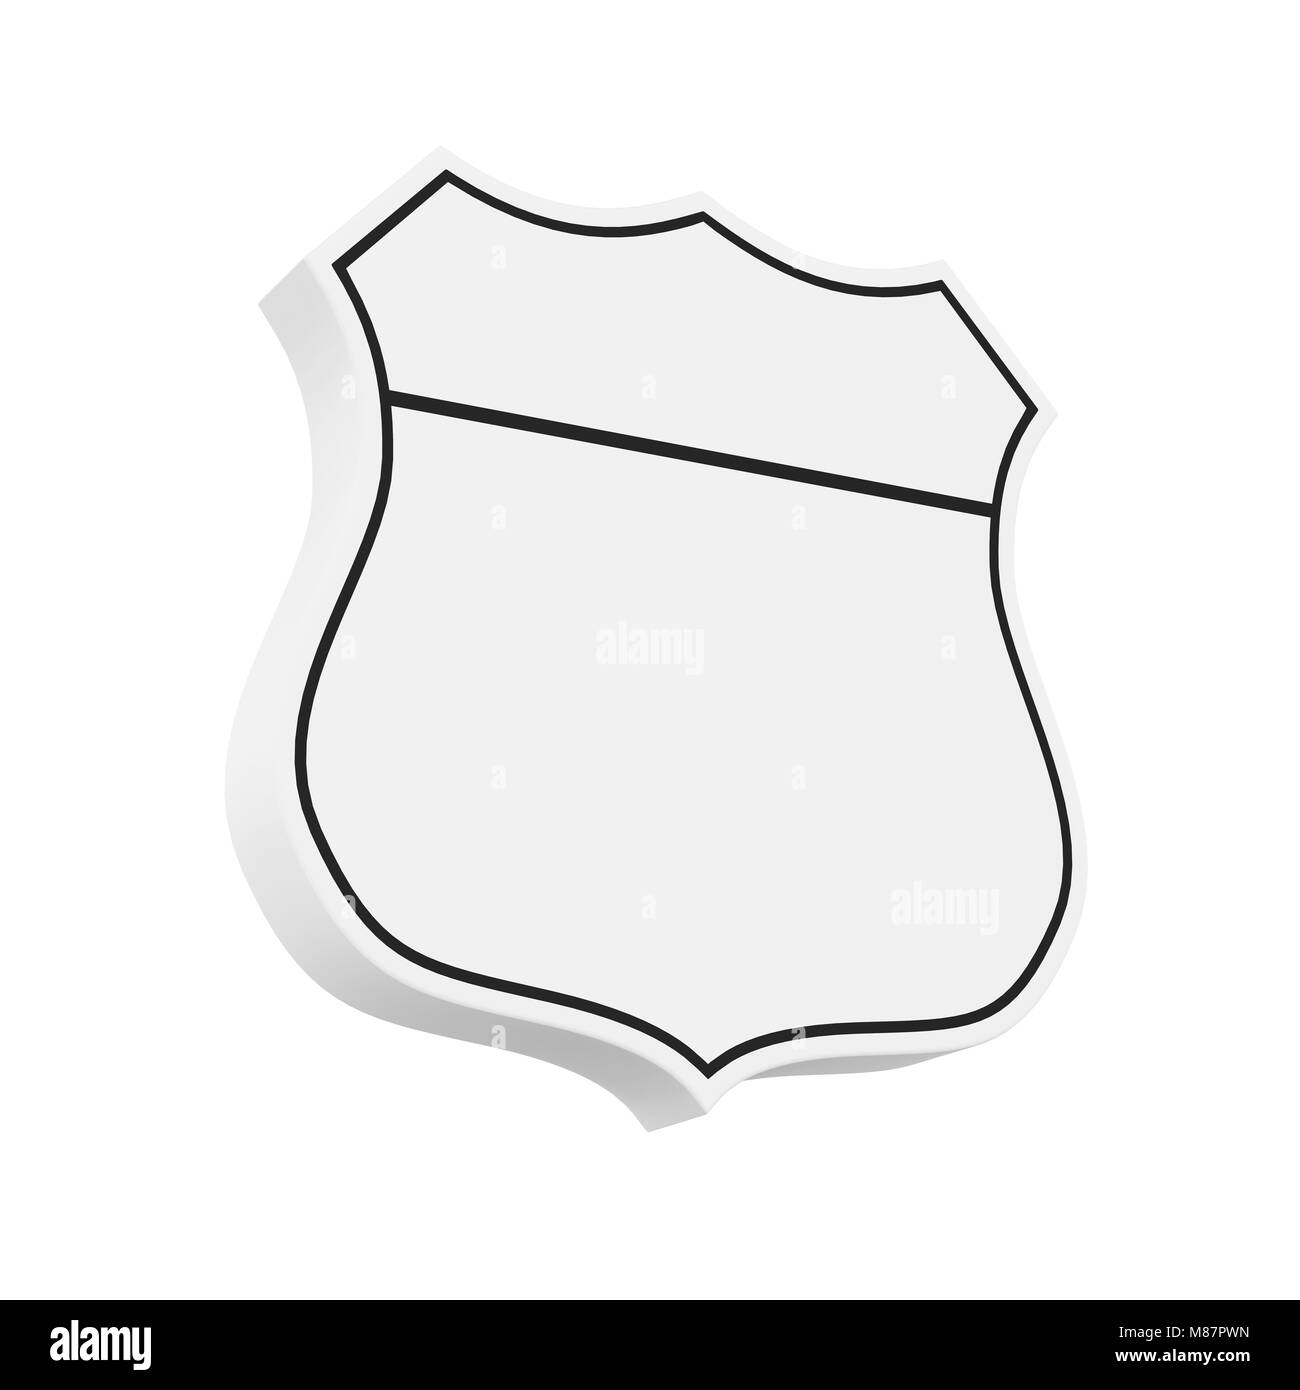 Blank Highway Route Shield Isolated Stock Photo